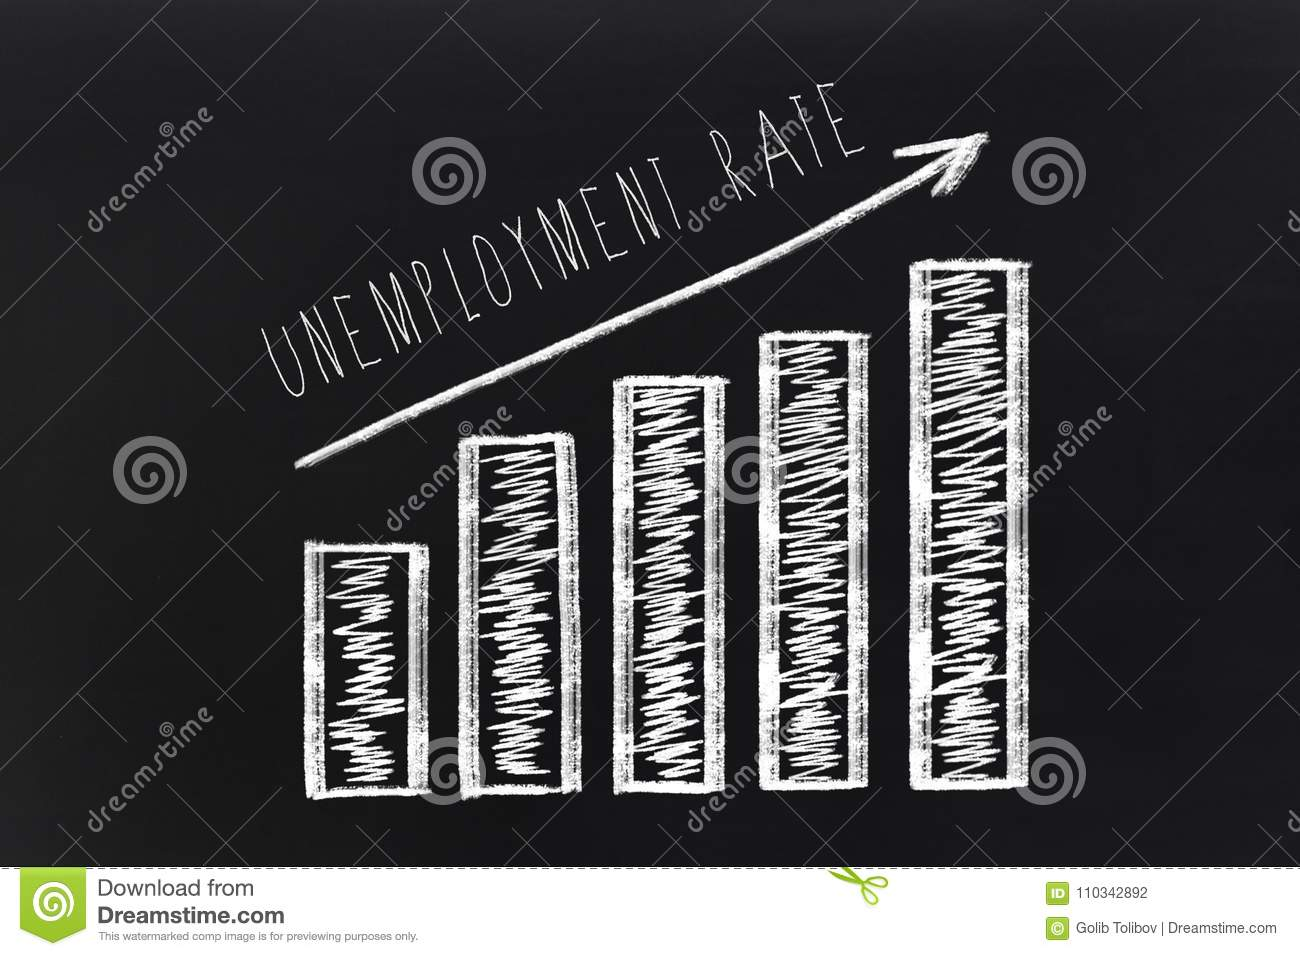 Chart of growing unemployment rate with a increasing arrow sign on the chalkboard.